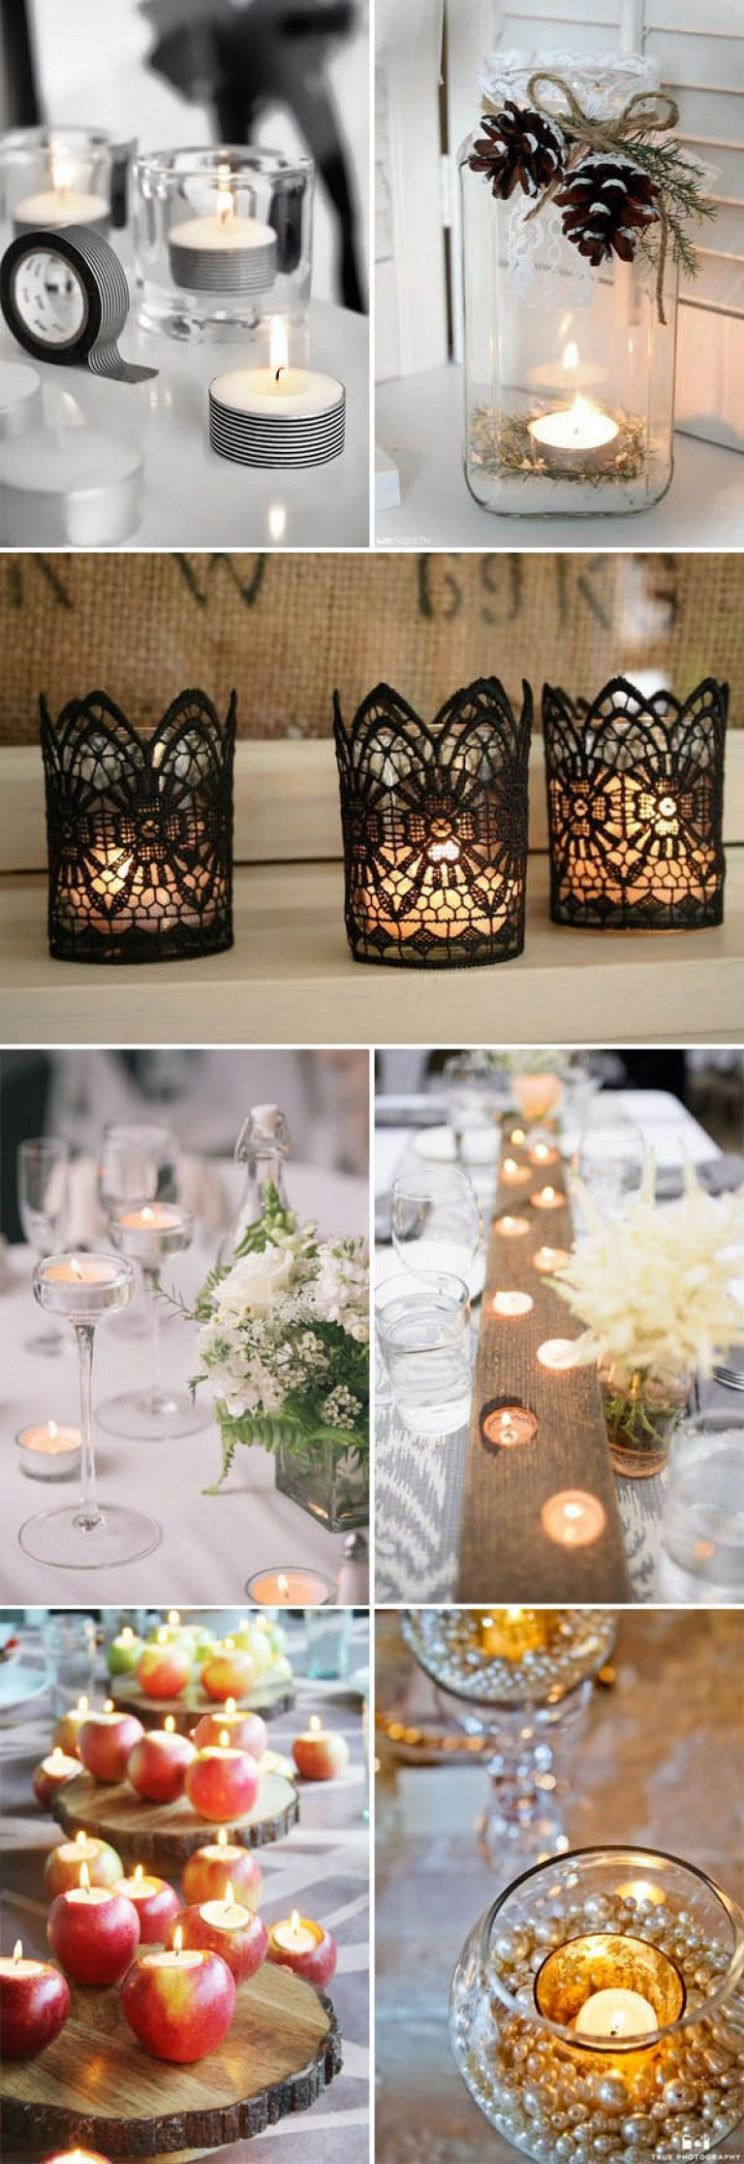 Wedding decorations simple  Pin by Savvy Wedding Themes on Country Weddings in   Pinterest